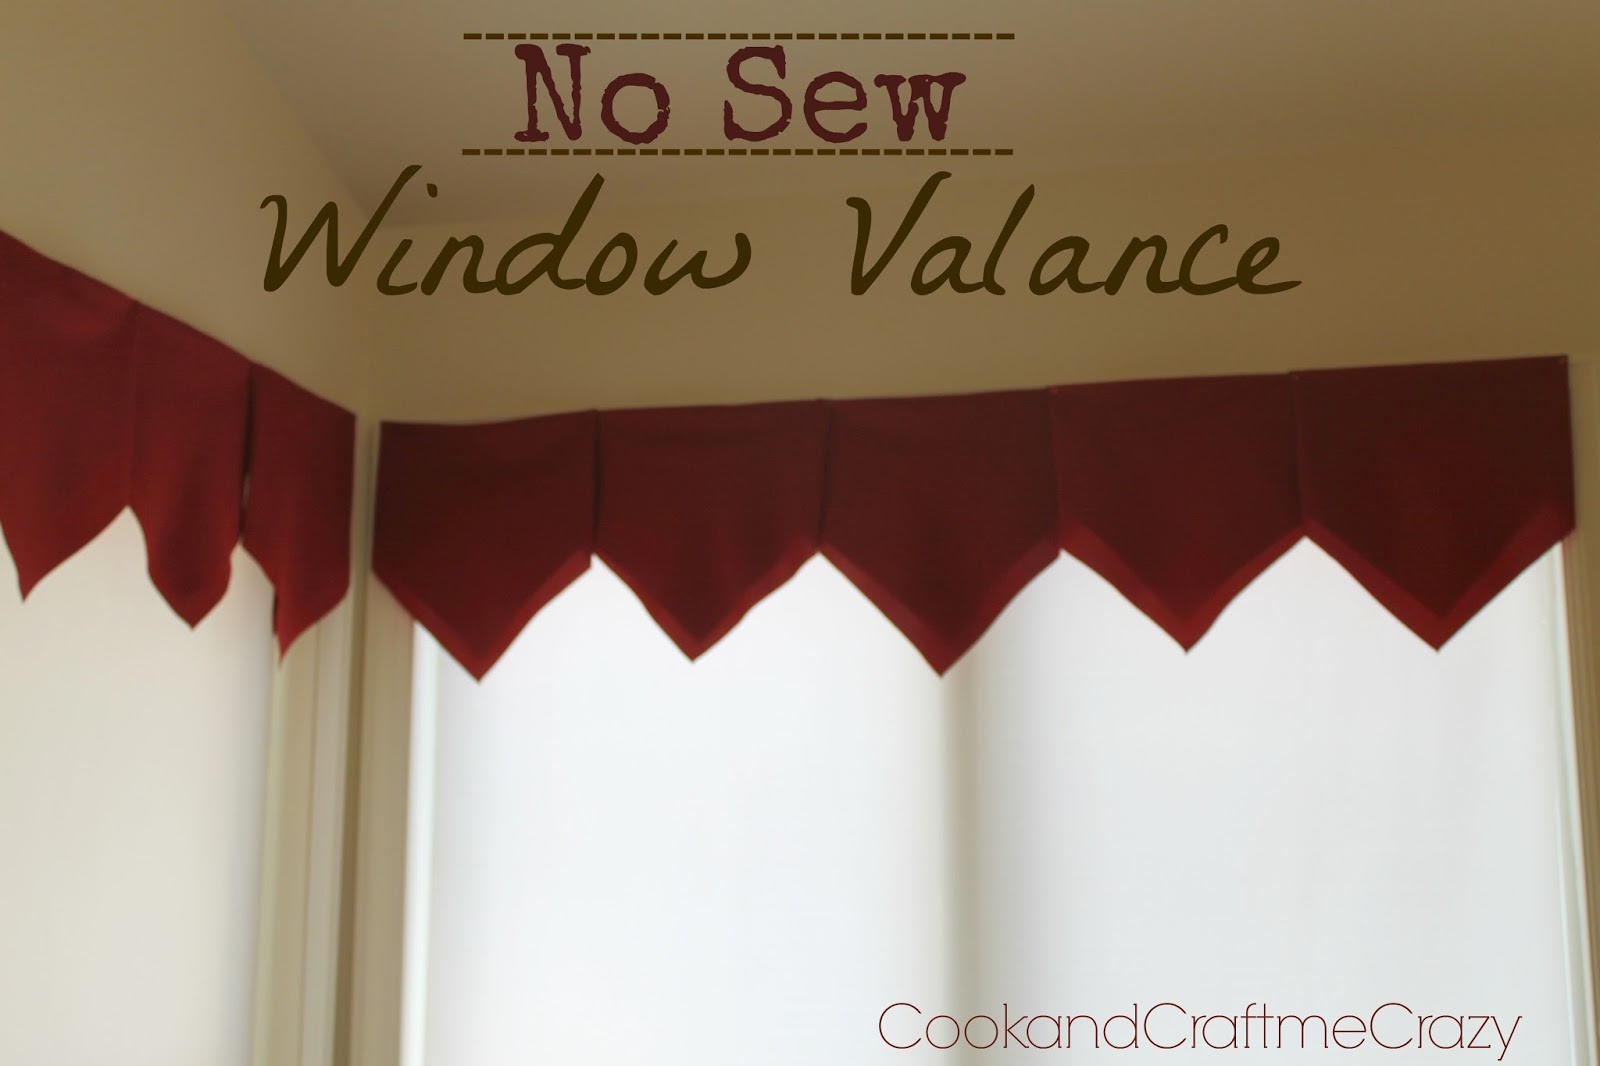 Cook and Craft Me Crazy: No Sew Window Valance